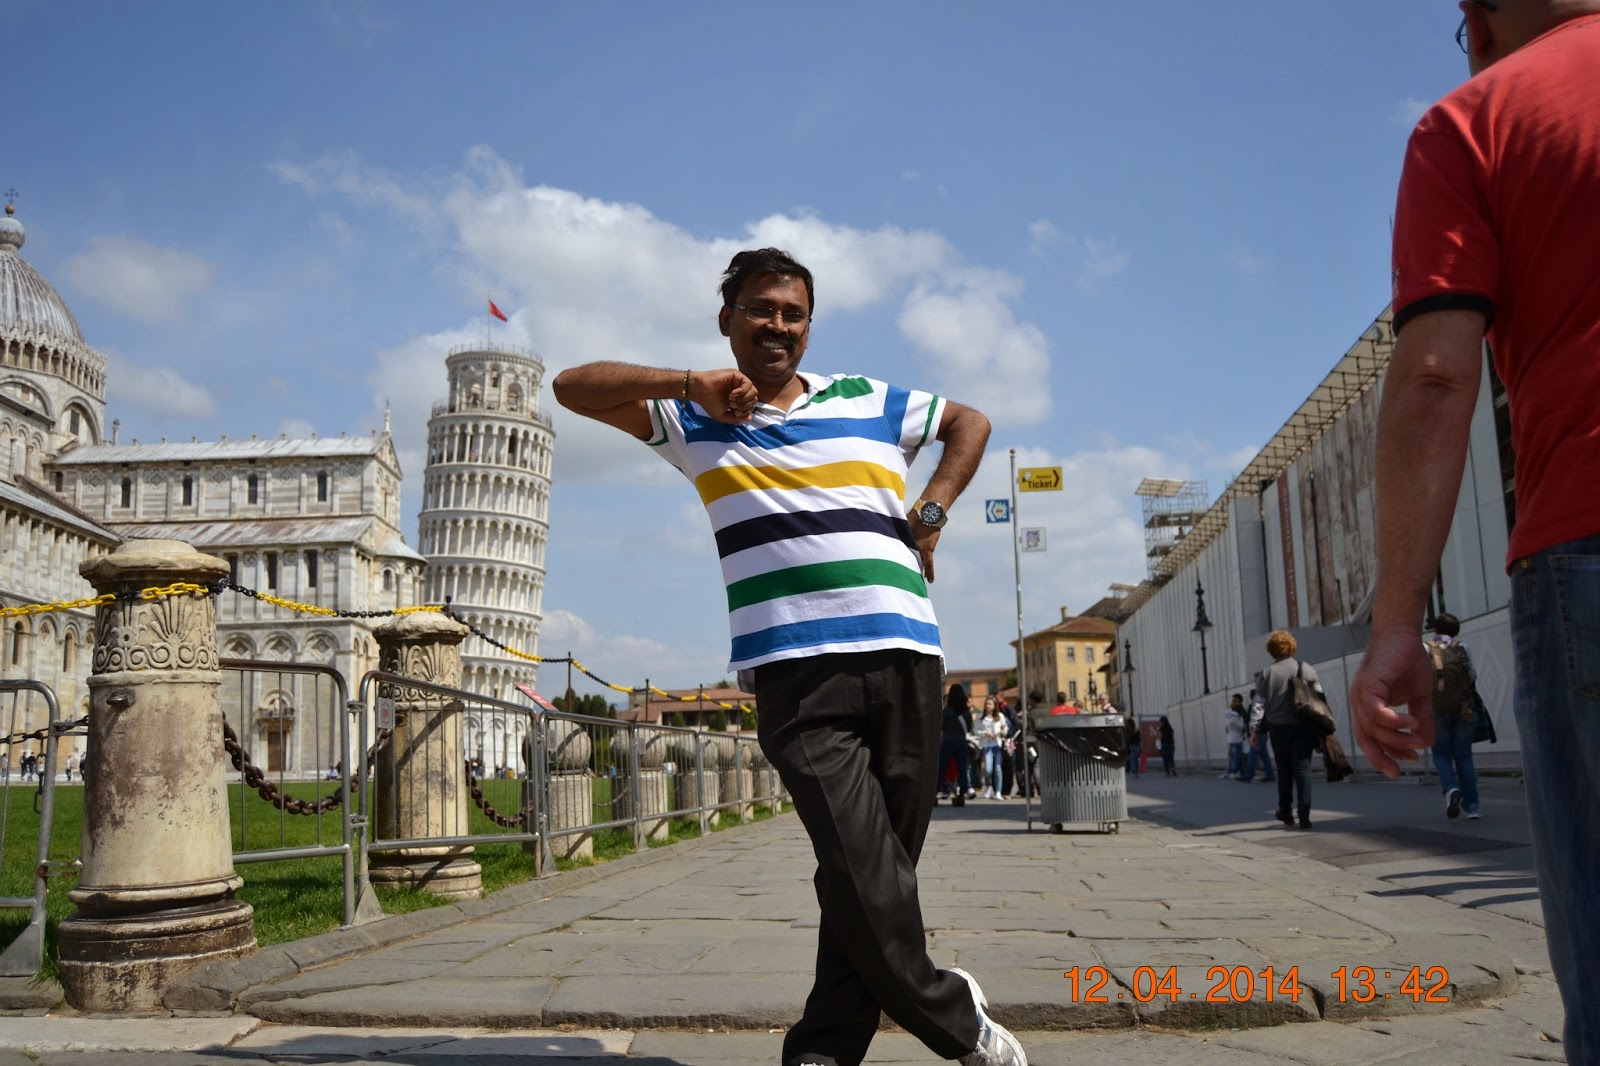 Mjothi Leaning on the Leaning tower of Pisa